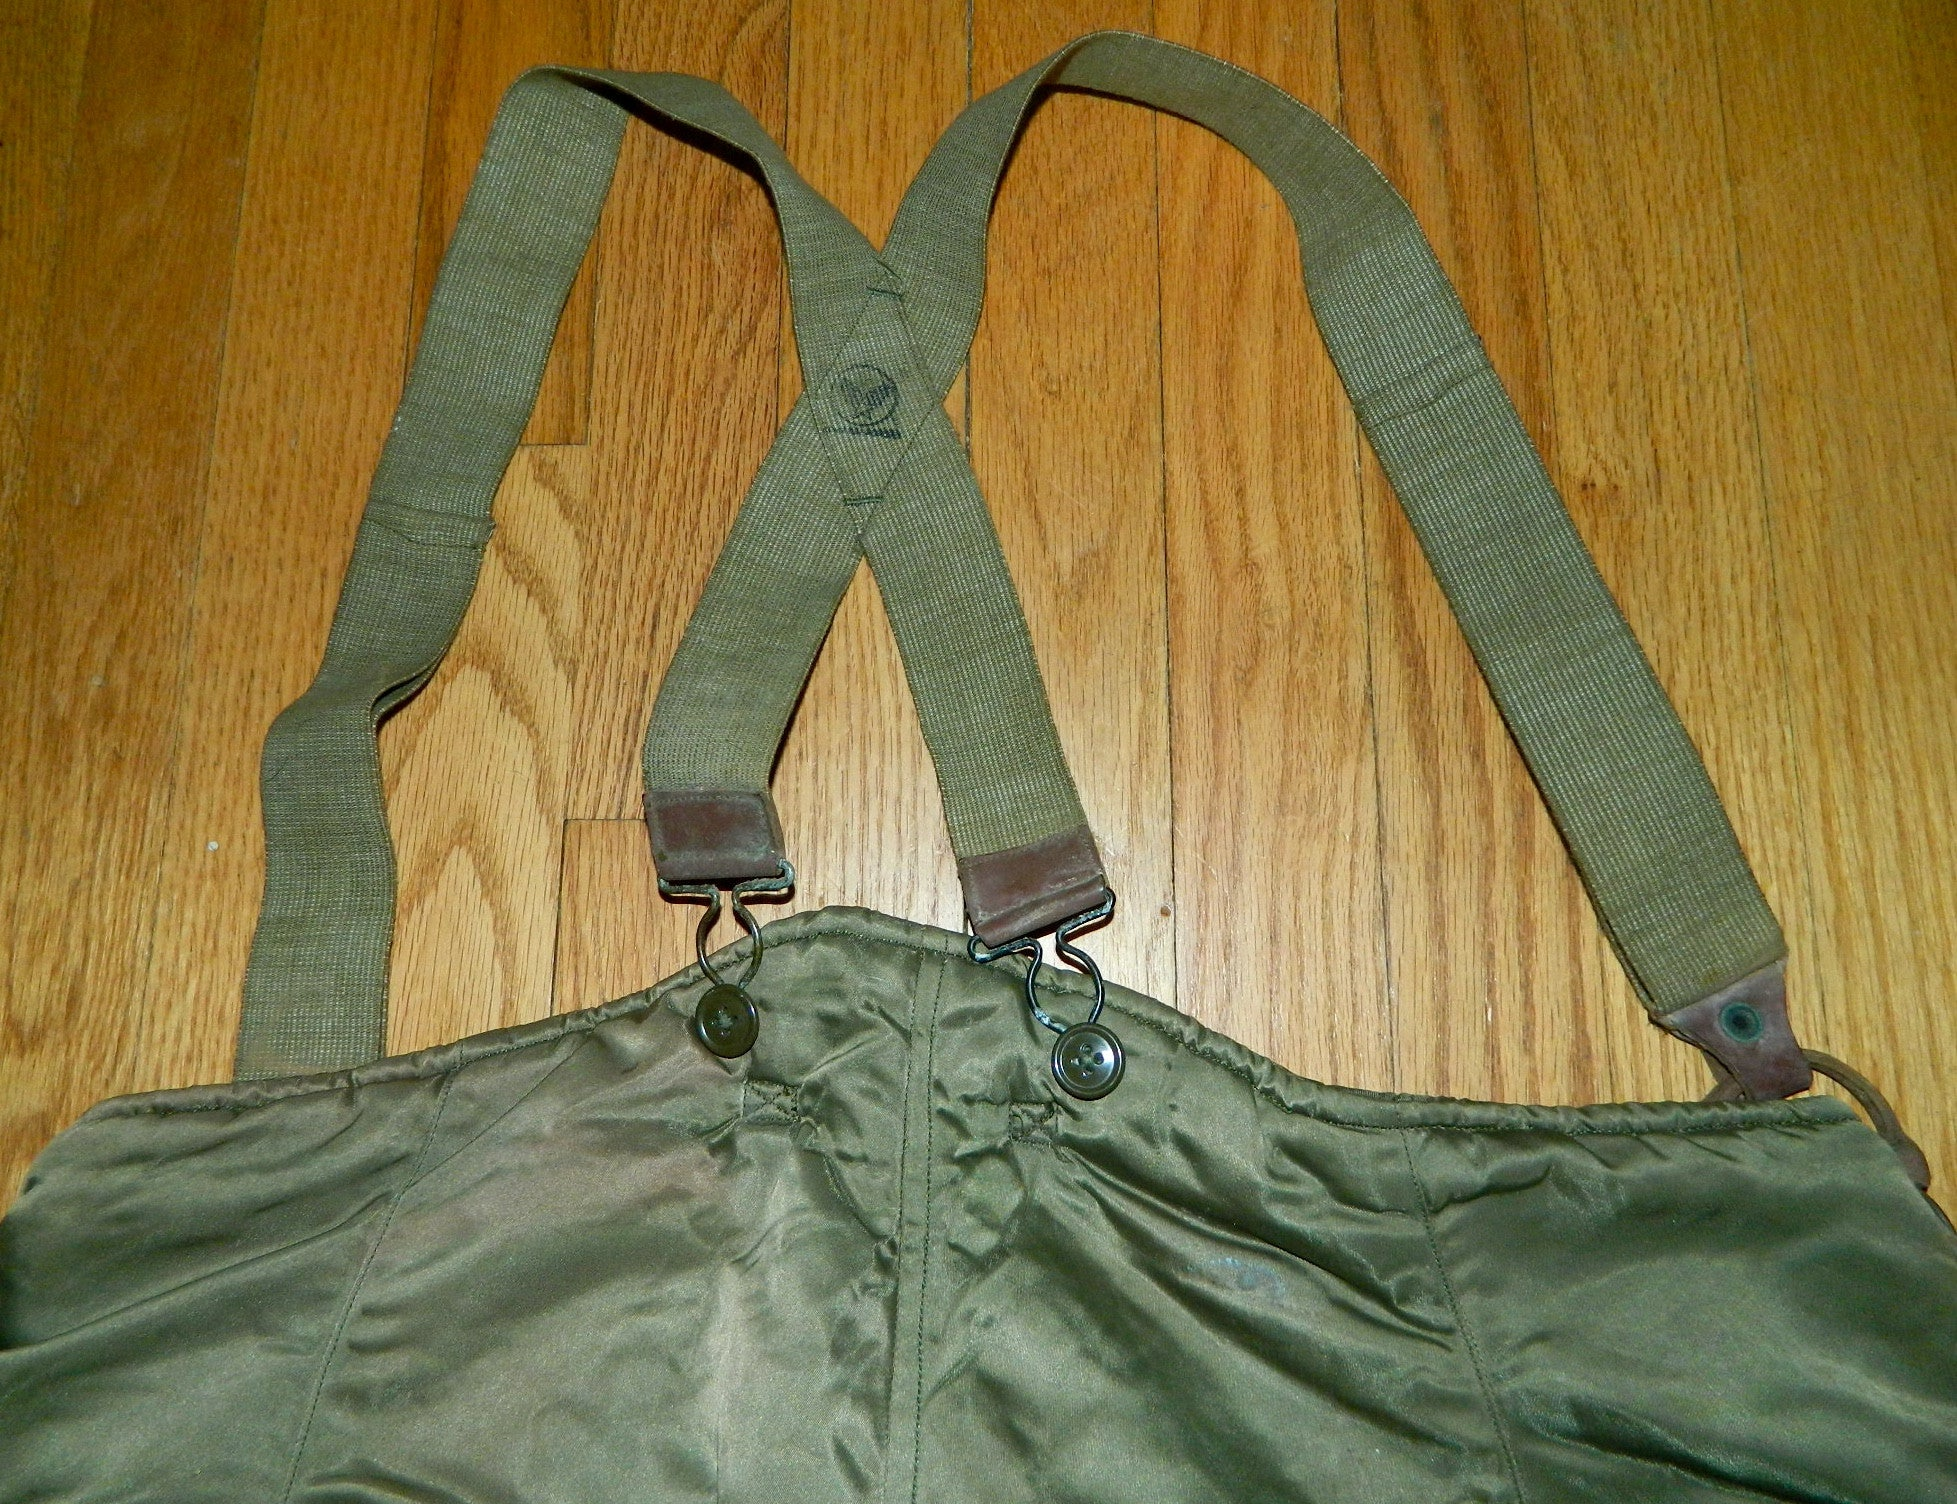 vintage 1940s Air Force arctic test pants / cold weather Ladd Field AFB US Military WWII USAAF